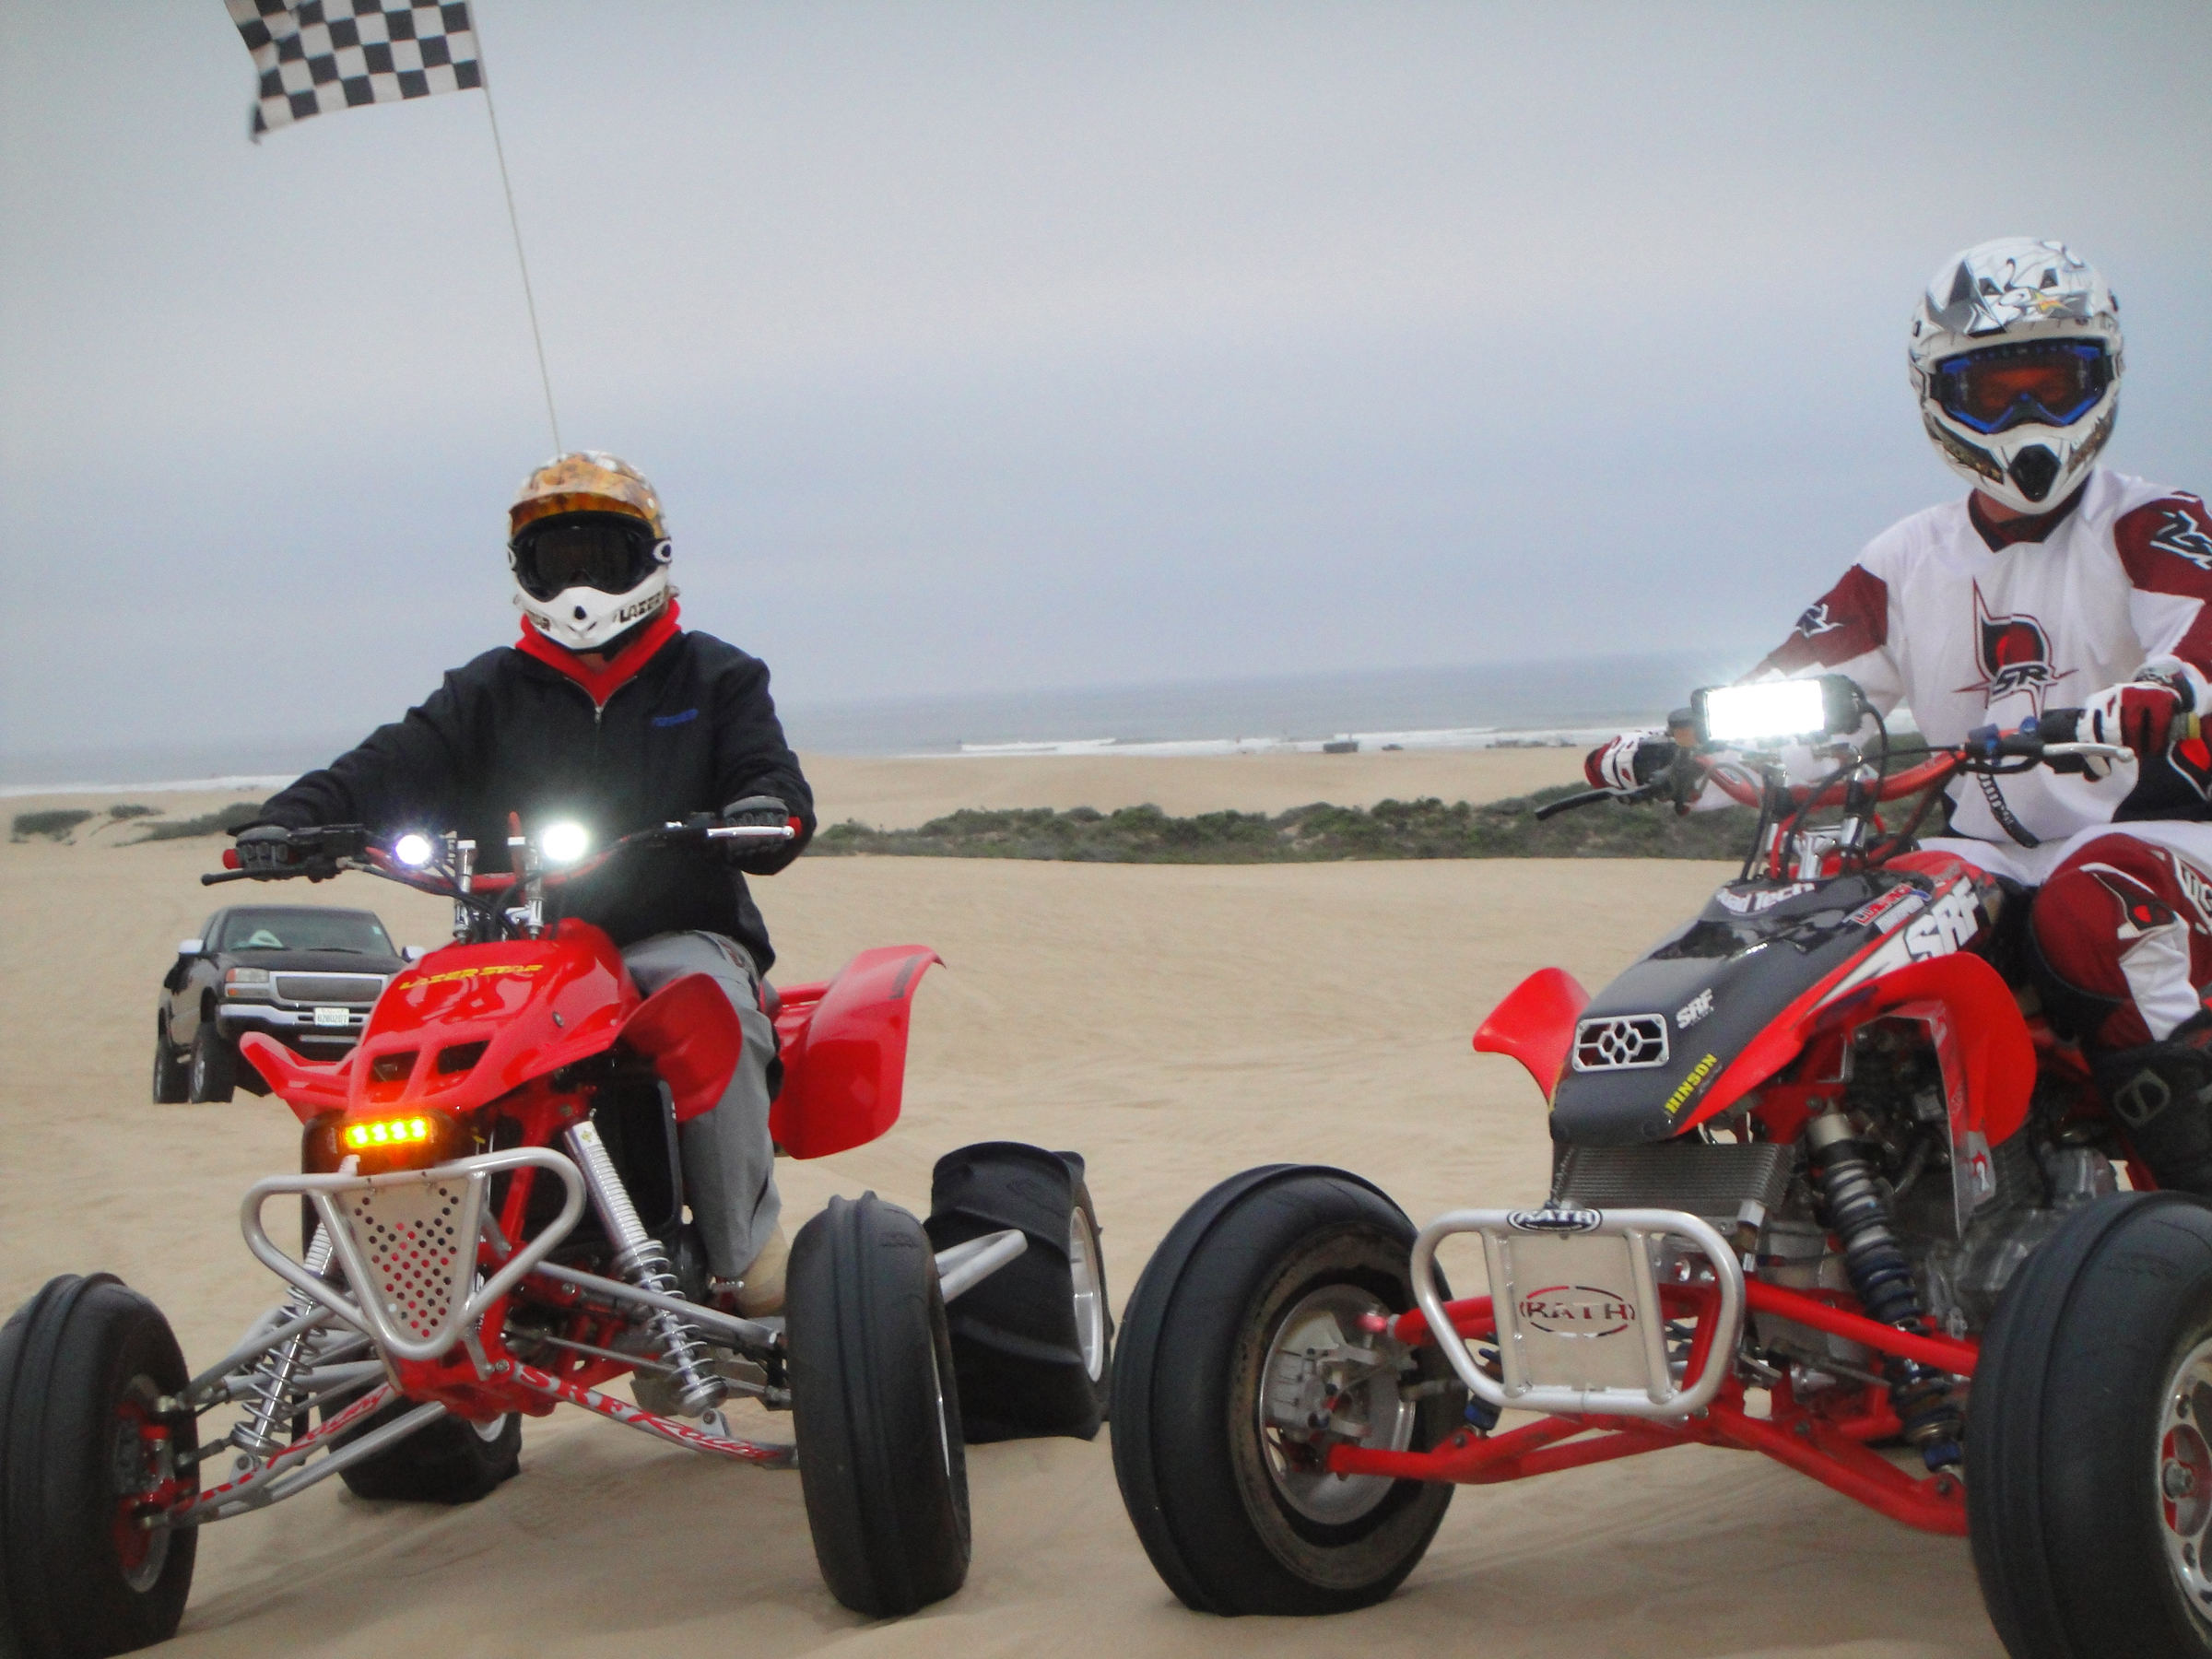 Lazer star lights offering led light handlebar kits for sport atvs mozeypictures Choice Image